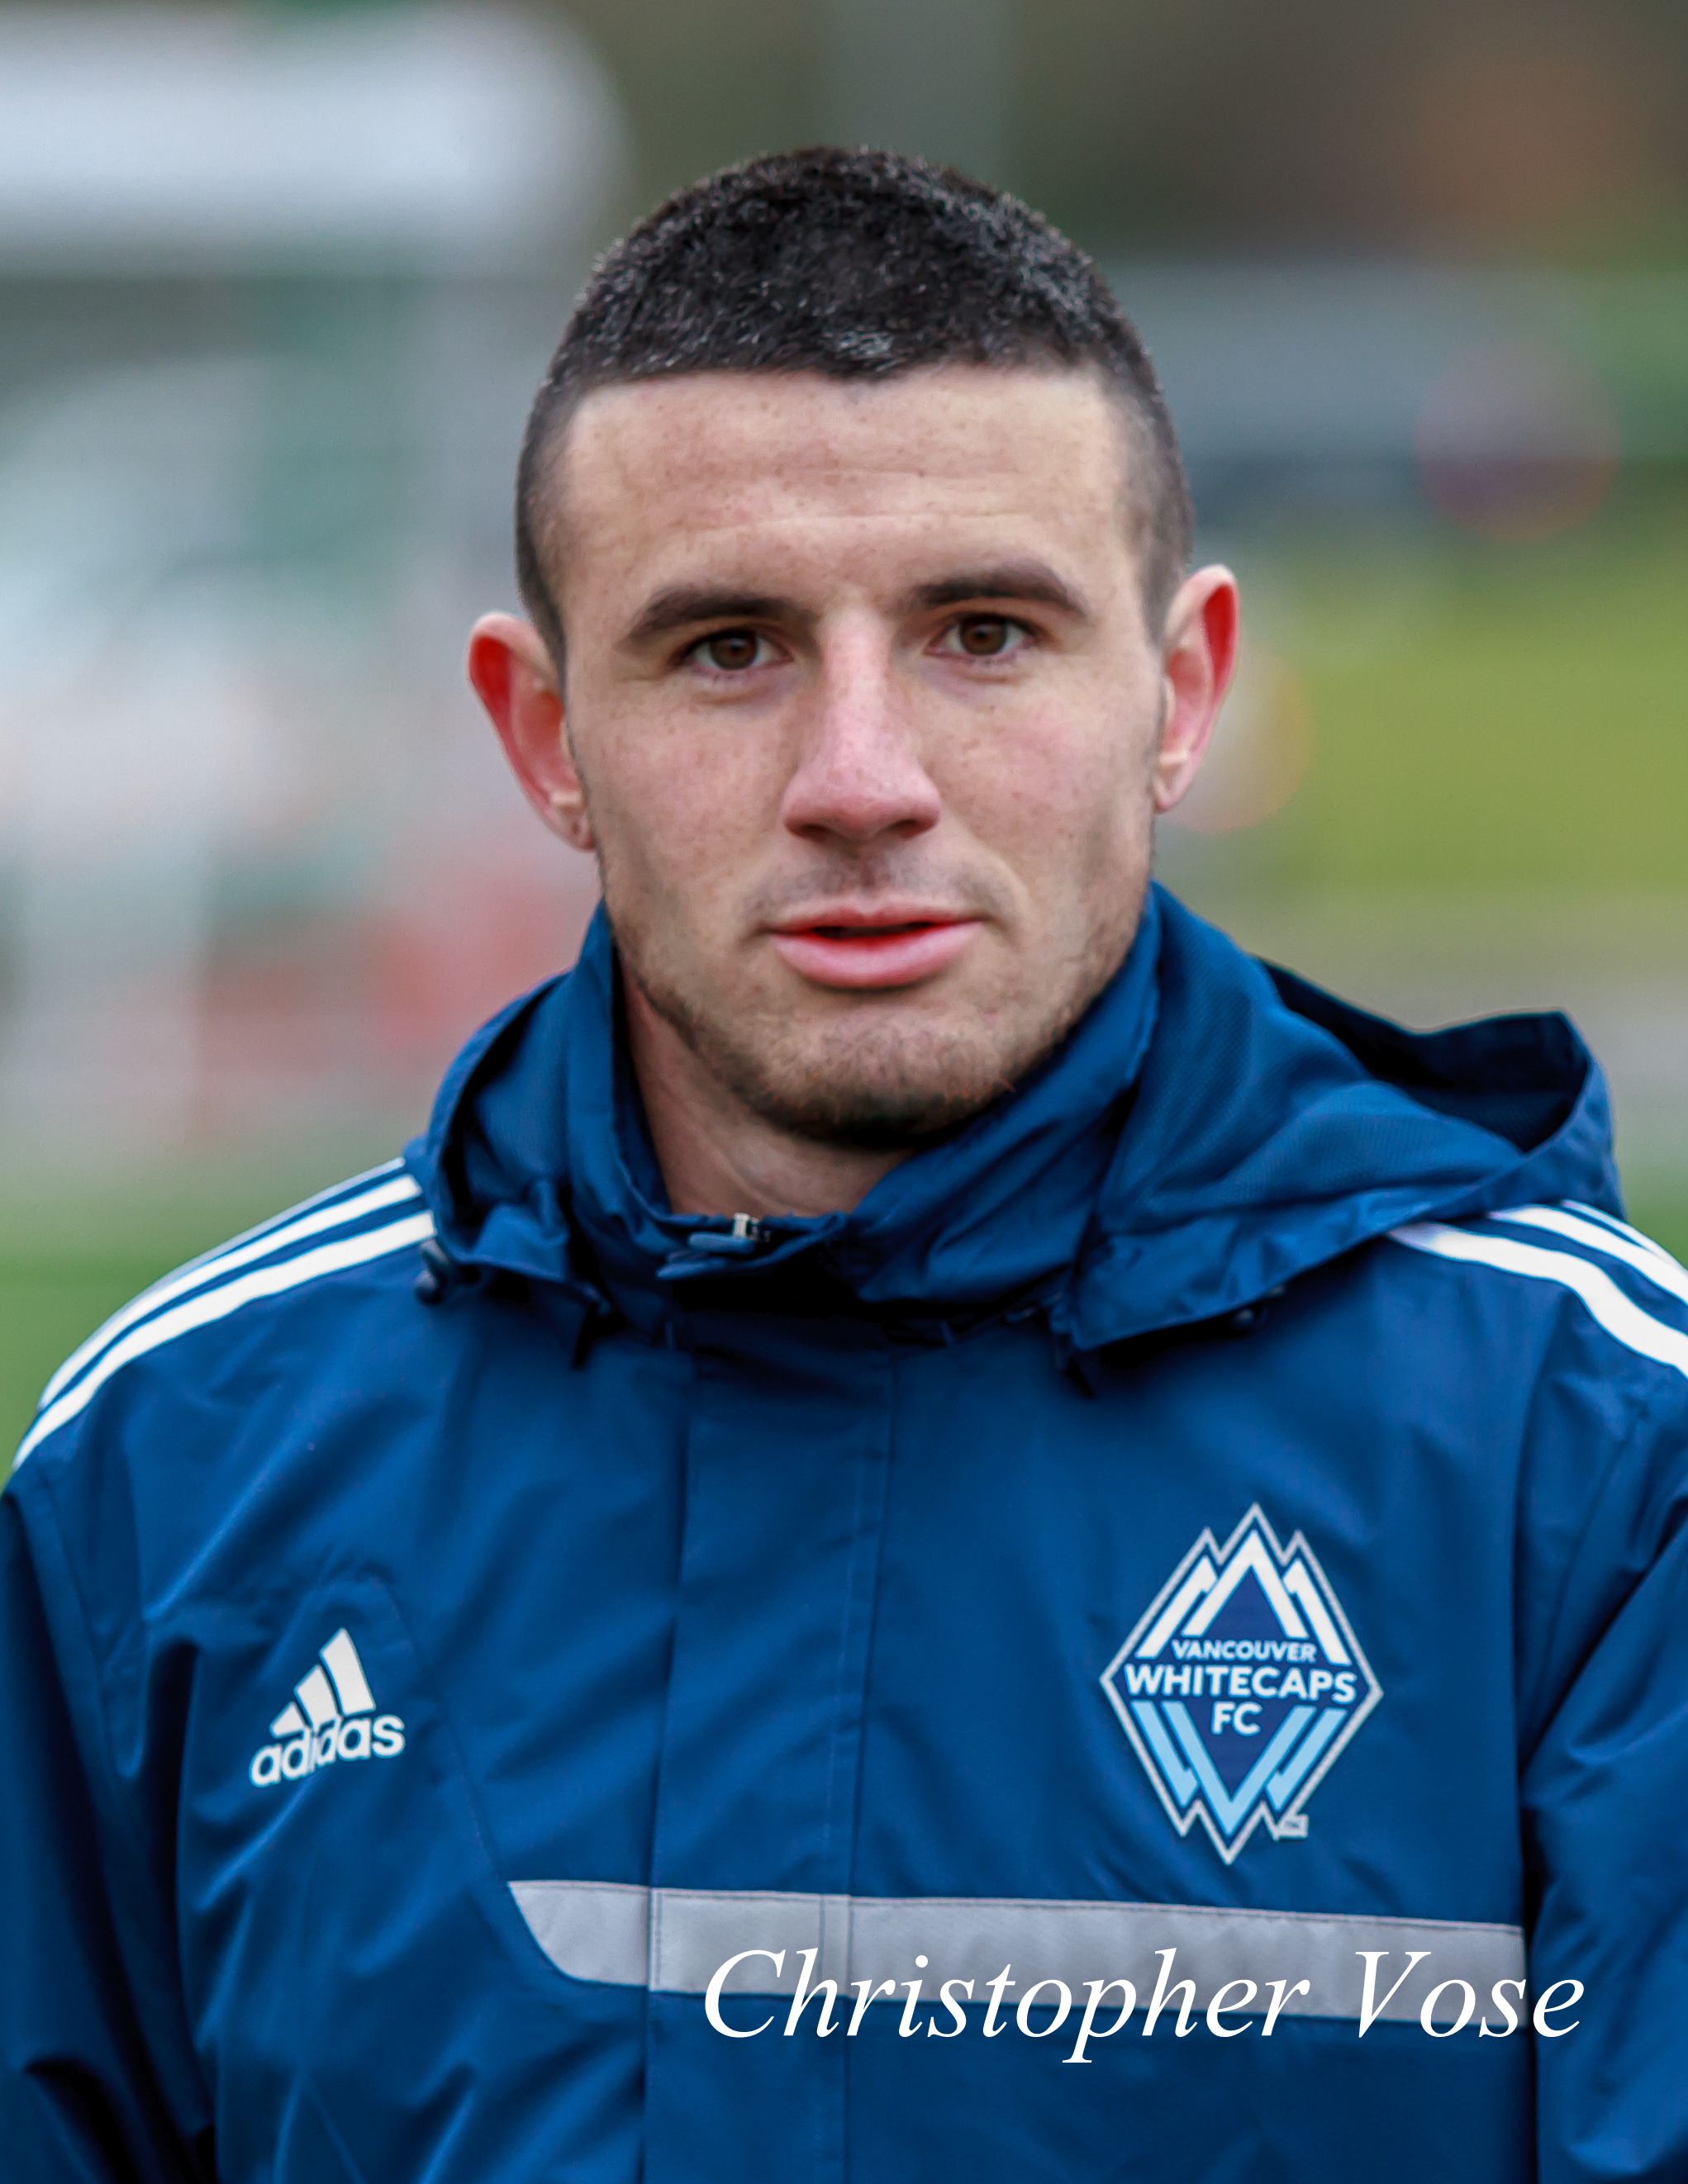 Andrés Fresenga at the Burnaby Lake Sports Complex during his trial with Vancouver Whitecaps FC on 9 February 2013.